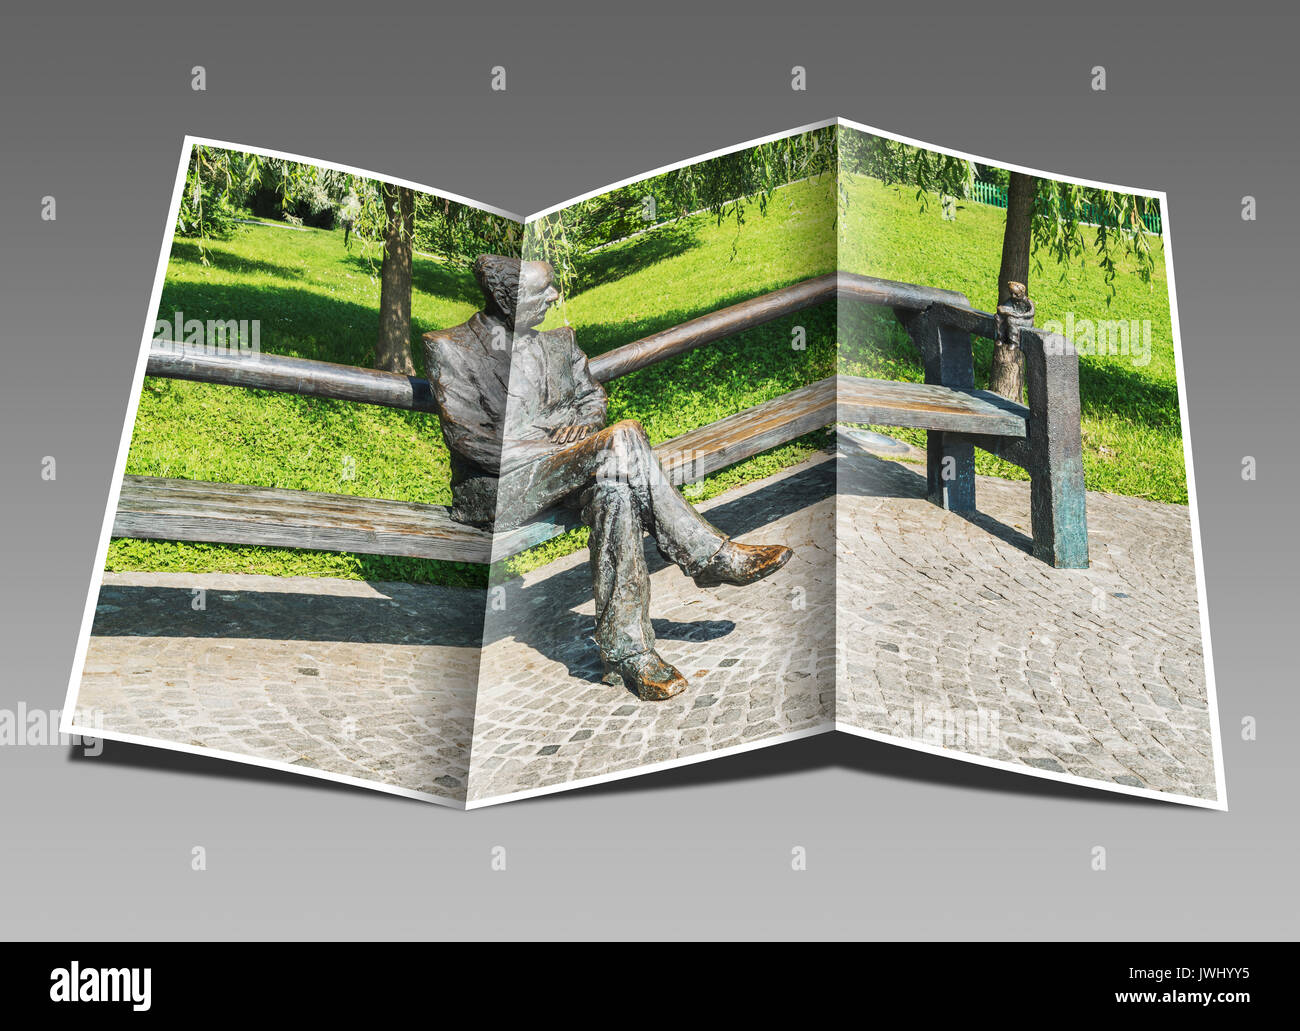 The statue of Edvard Kocbek is located in Tivoli Park, Ljubljana, Slovenia, Europe - Stock Image